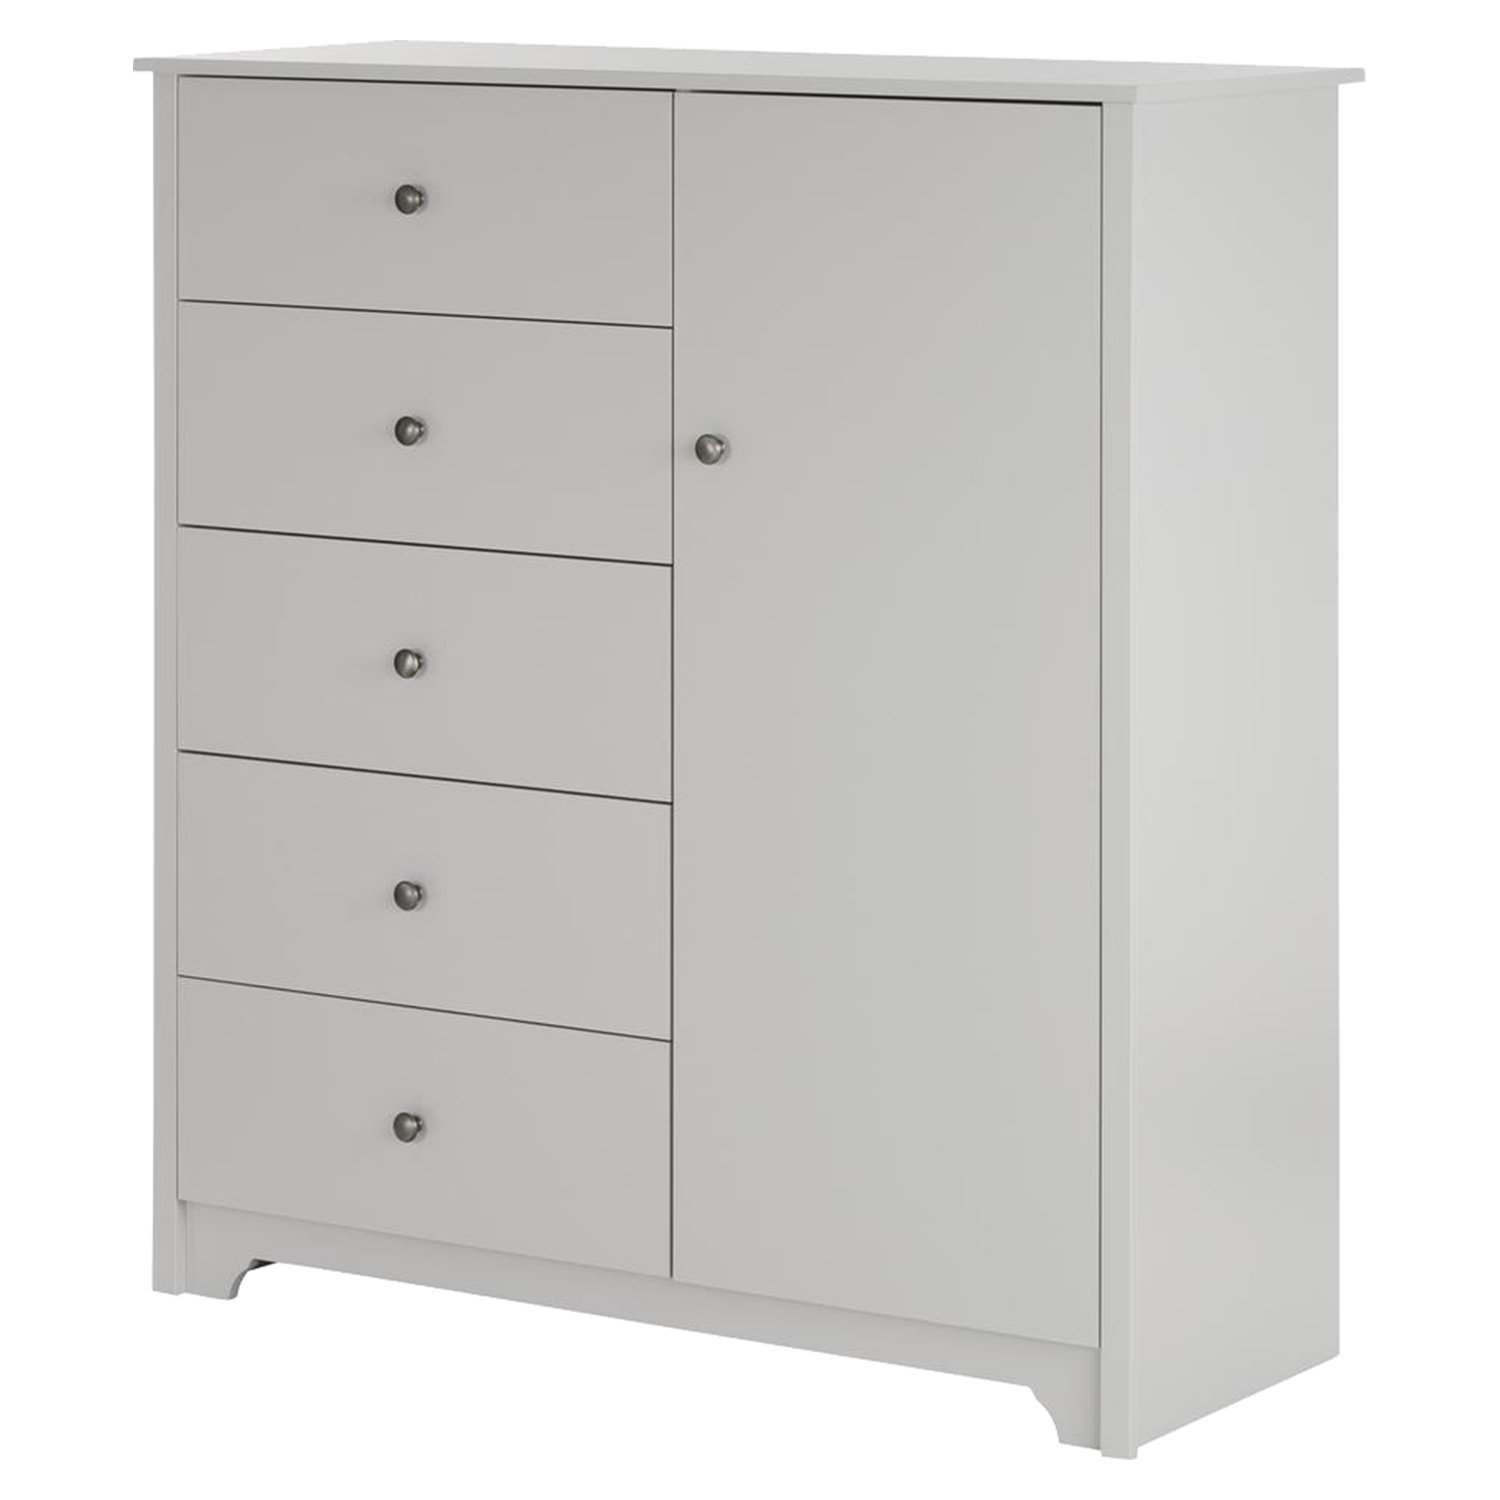 Vito Door Chest - 5 Drawers, Soft Gray - SS-10234